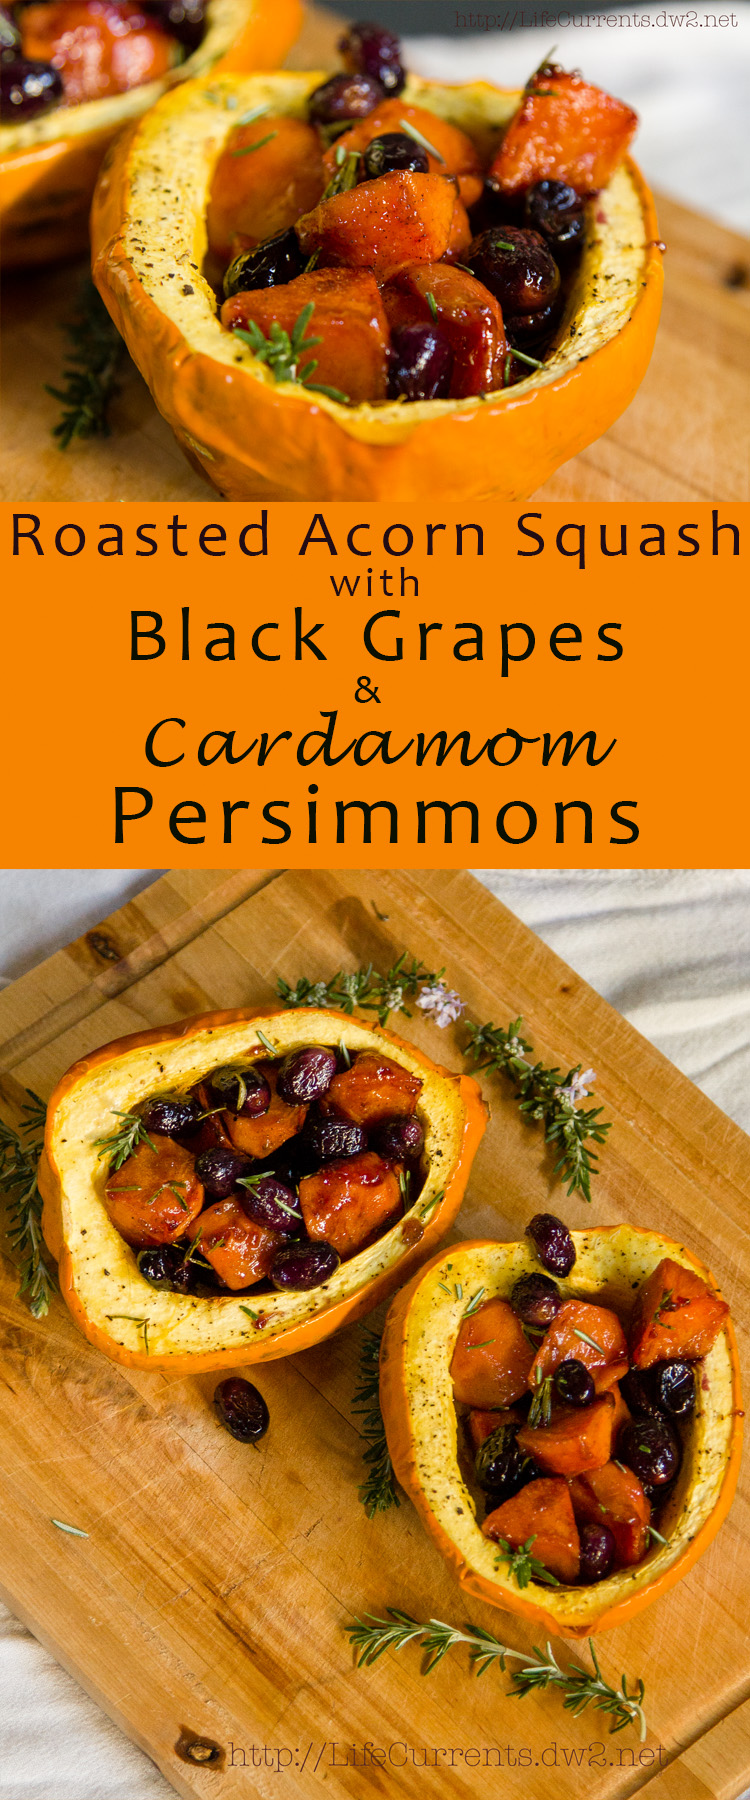 Roasted Acorn Squash with Black Grapes and Cardamom Persimmons - a delicious & impressive fall side dish